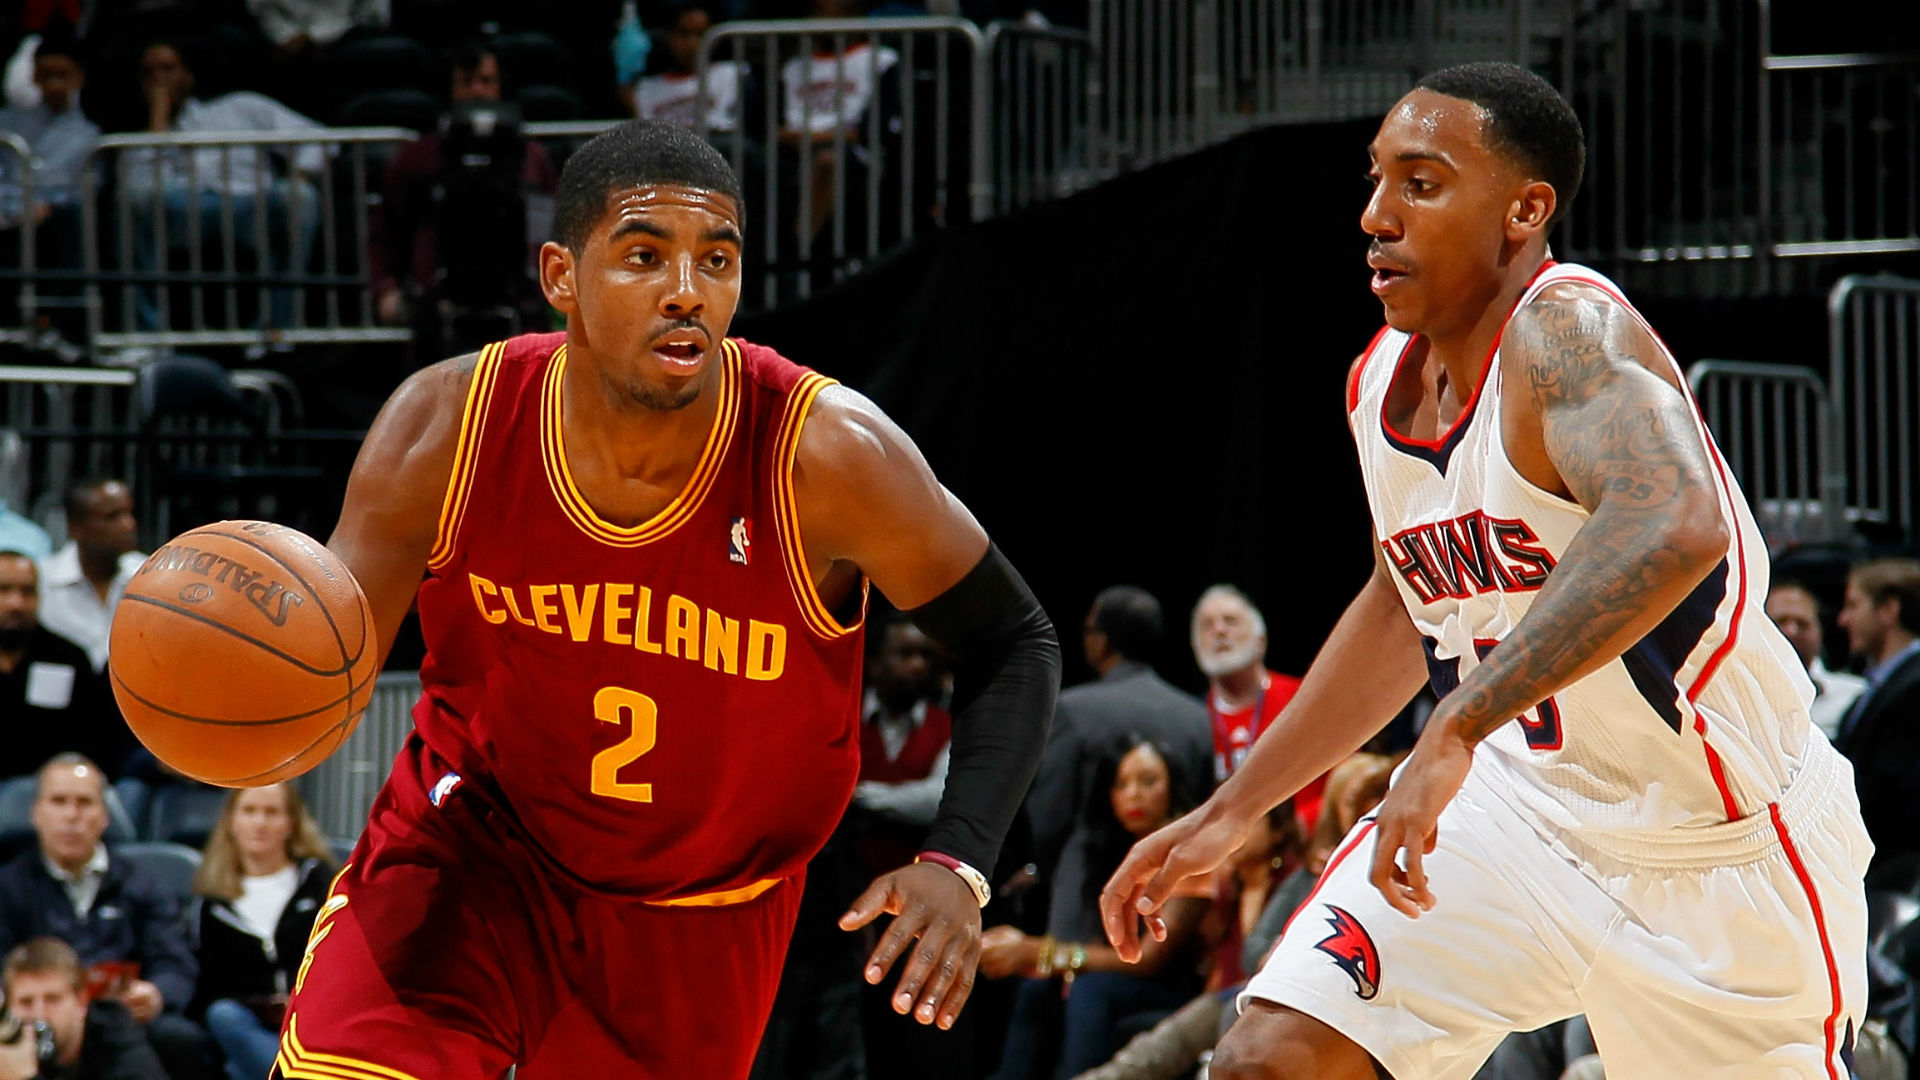 Cavaliers vs. Hawks Game 2 betting line and pick – Atlanta looks to rebound amid key injury